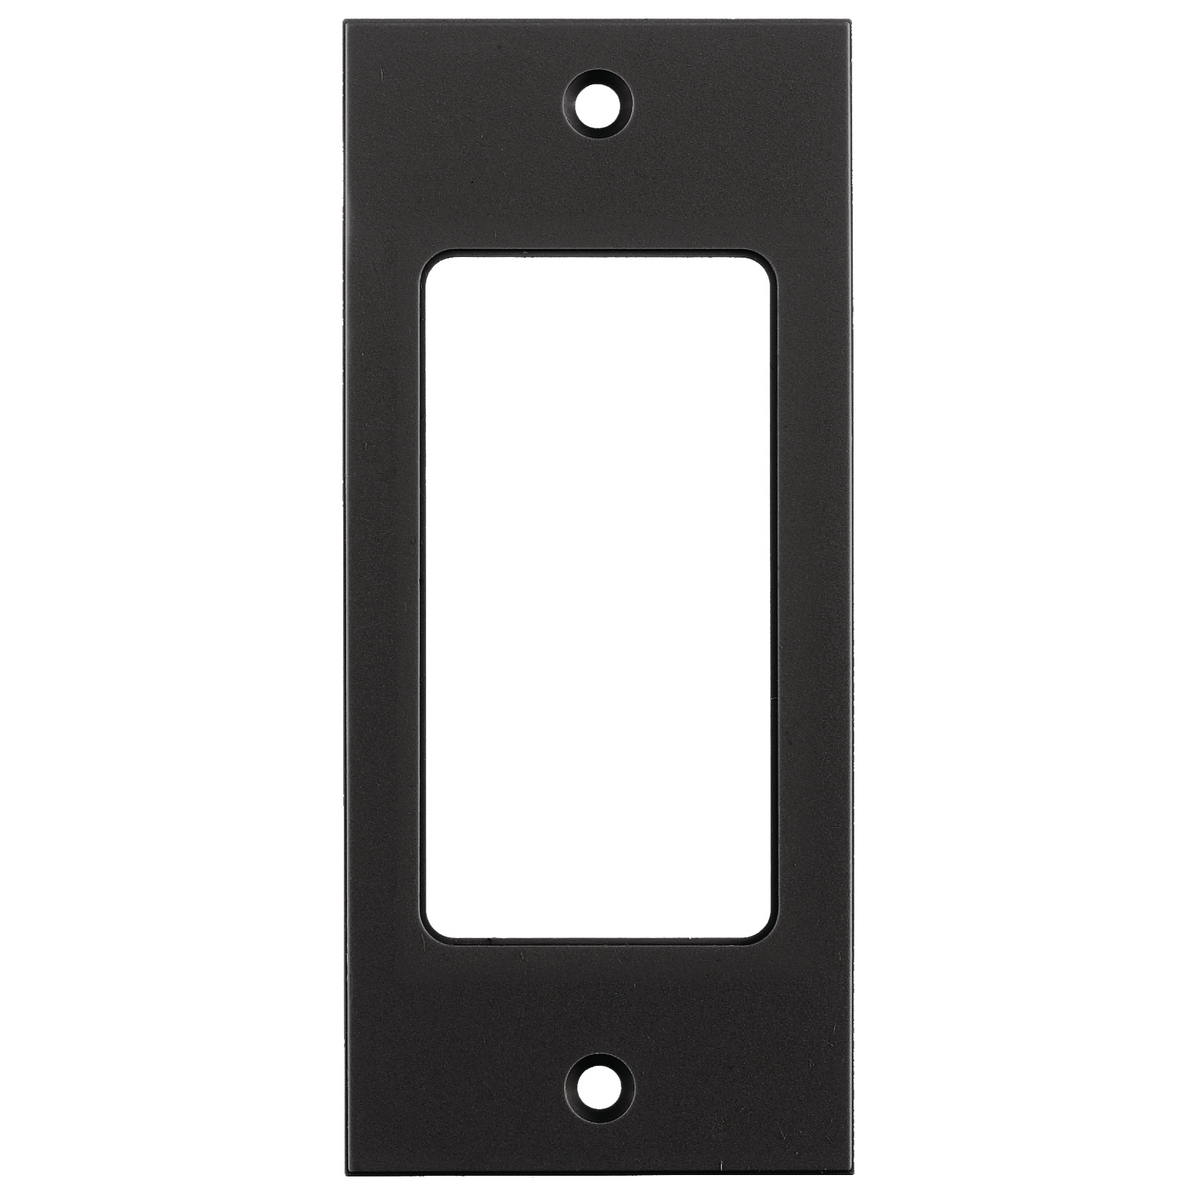 Hubbell HBLDE301SBK 2 x 4.5 Inch Black Decorator Screw Type Face Plate